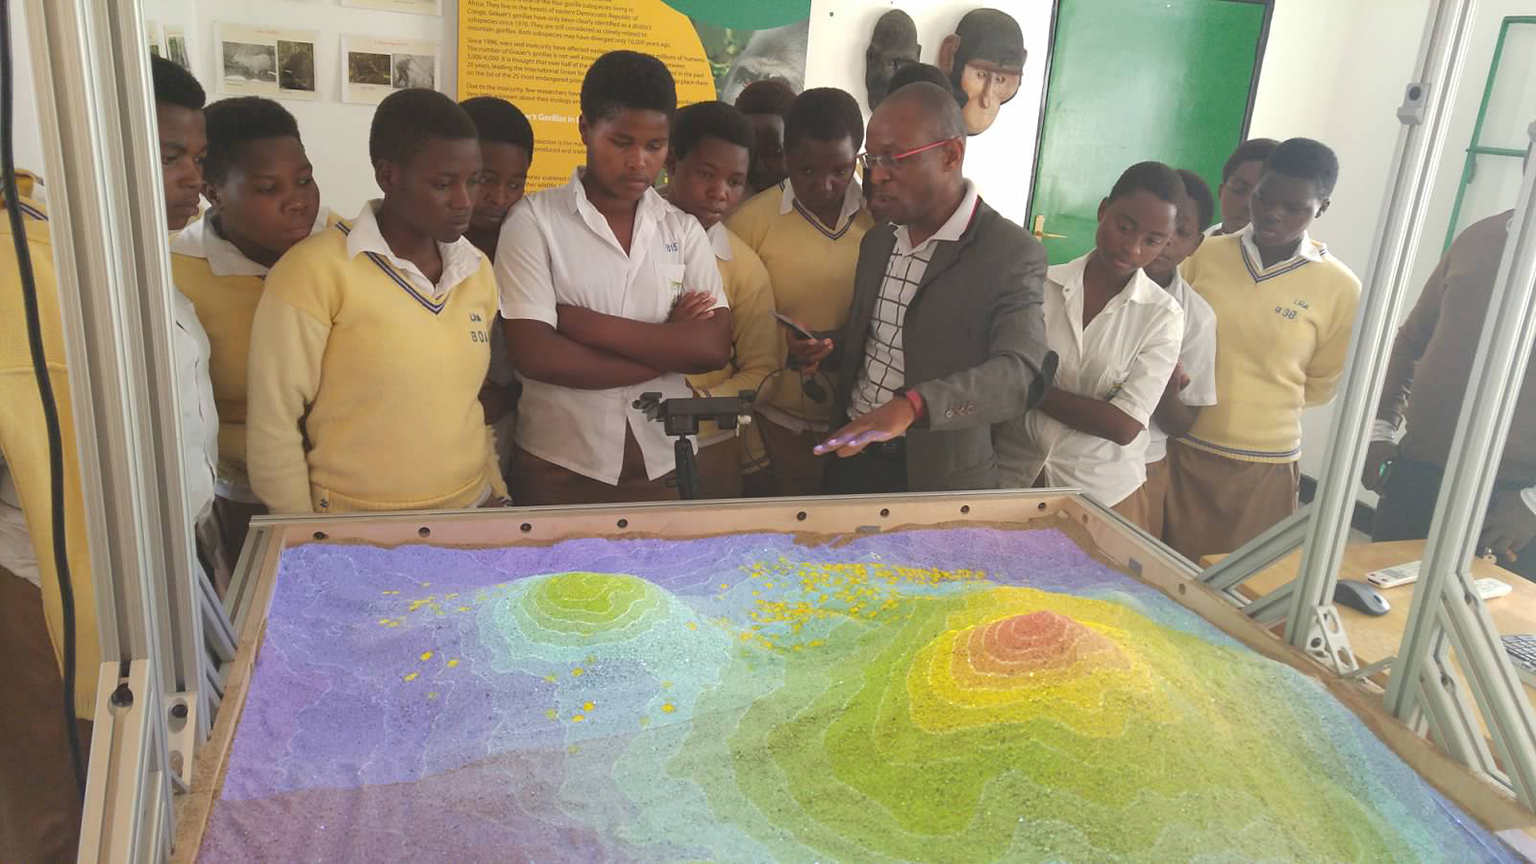 interactive sandbox with school children standing around it.